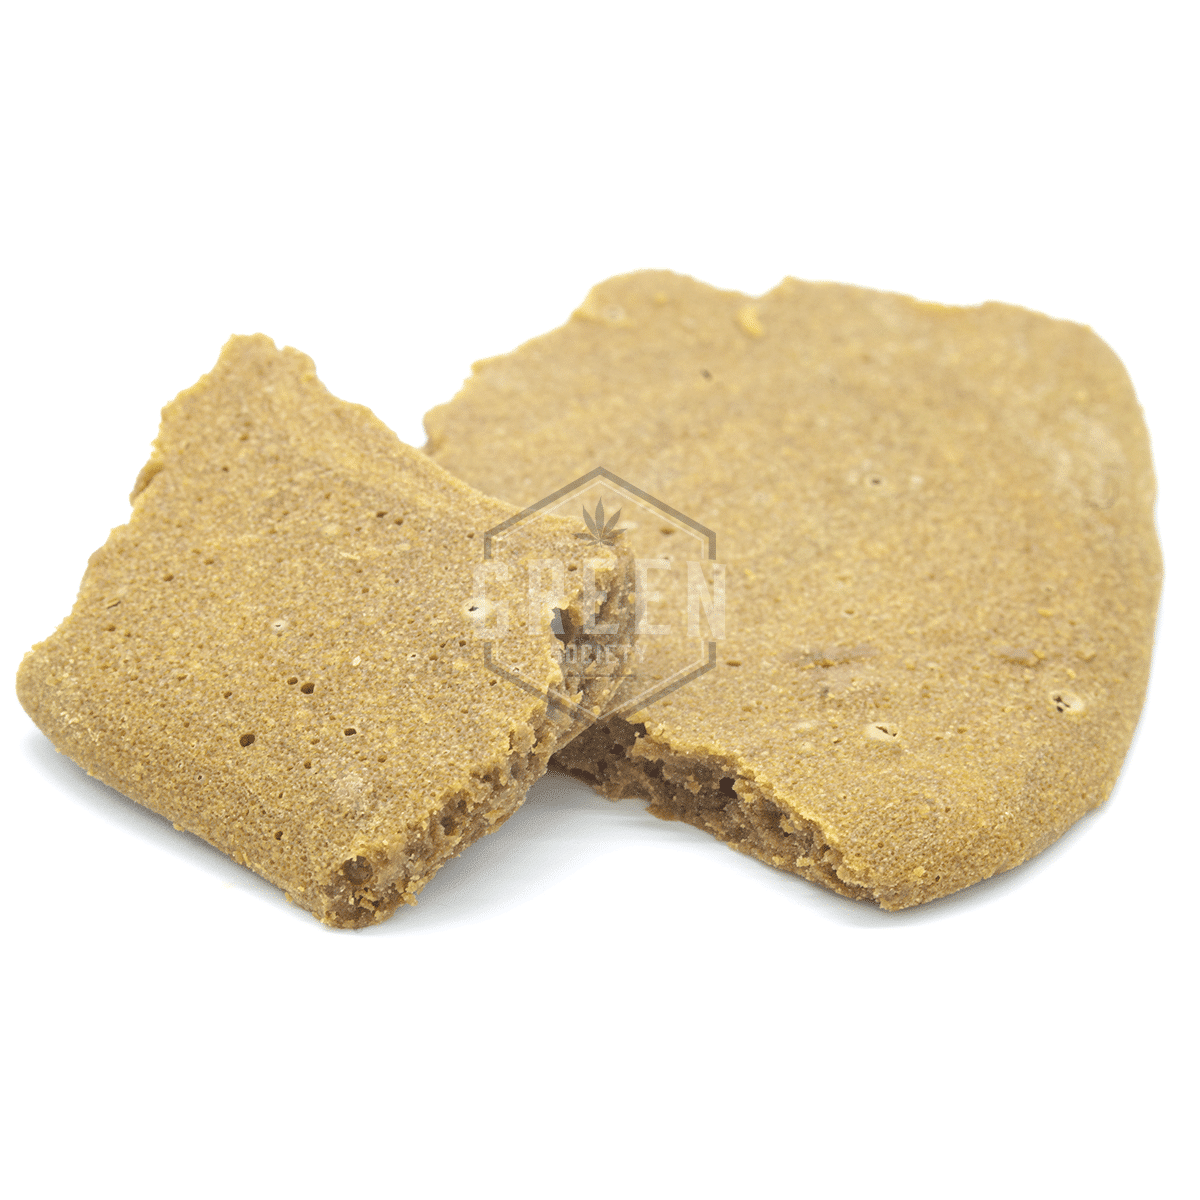 Honeycomb Budder by Green Society - Image © 2018 Green Society. All Rights Reserved.